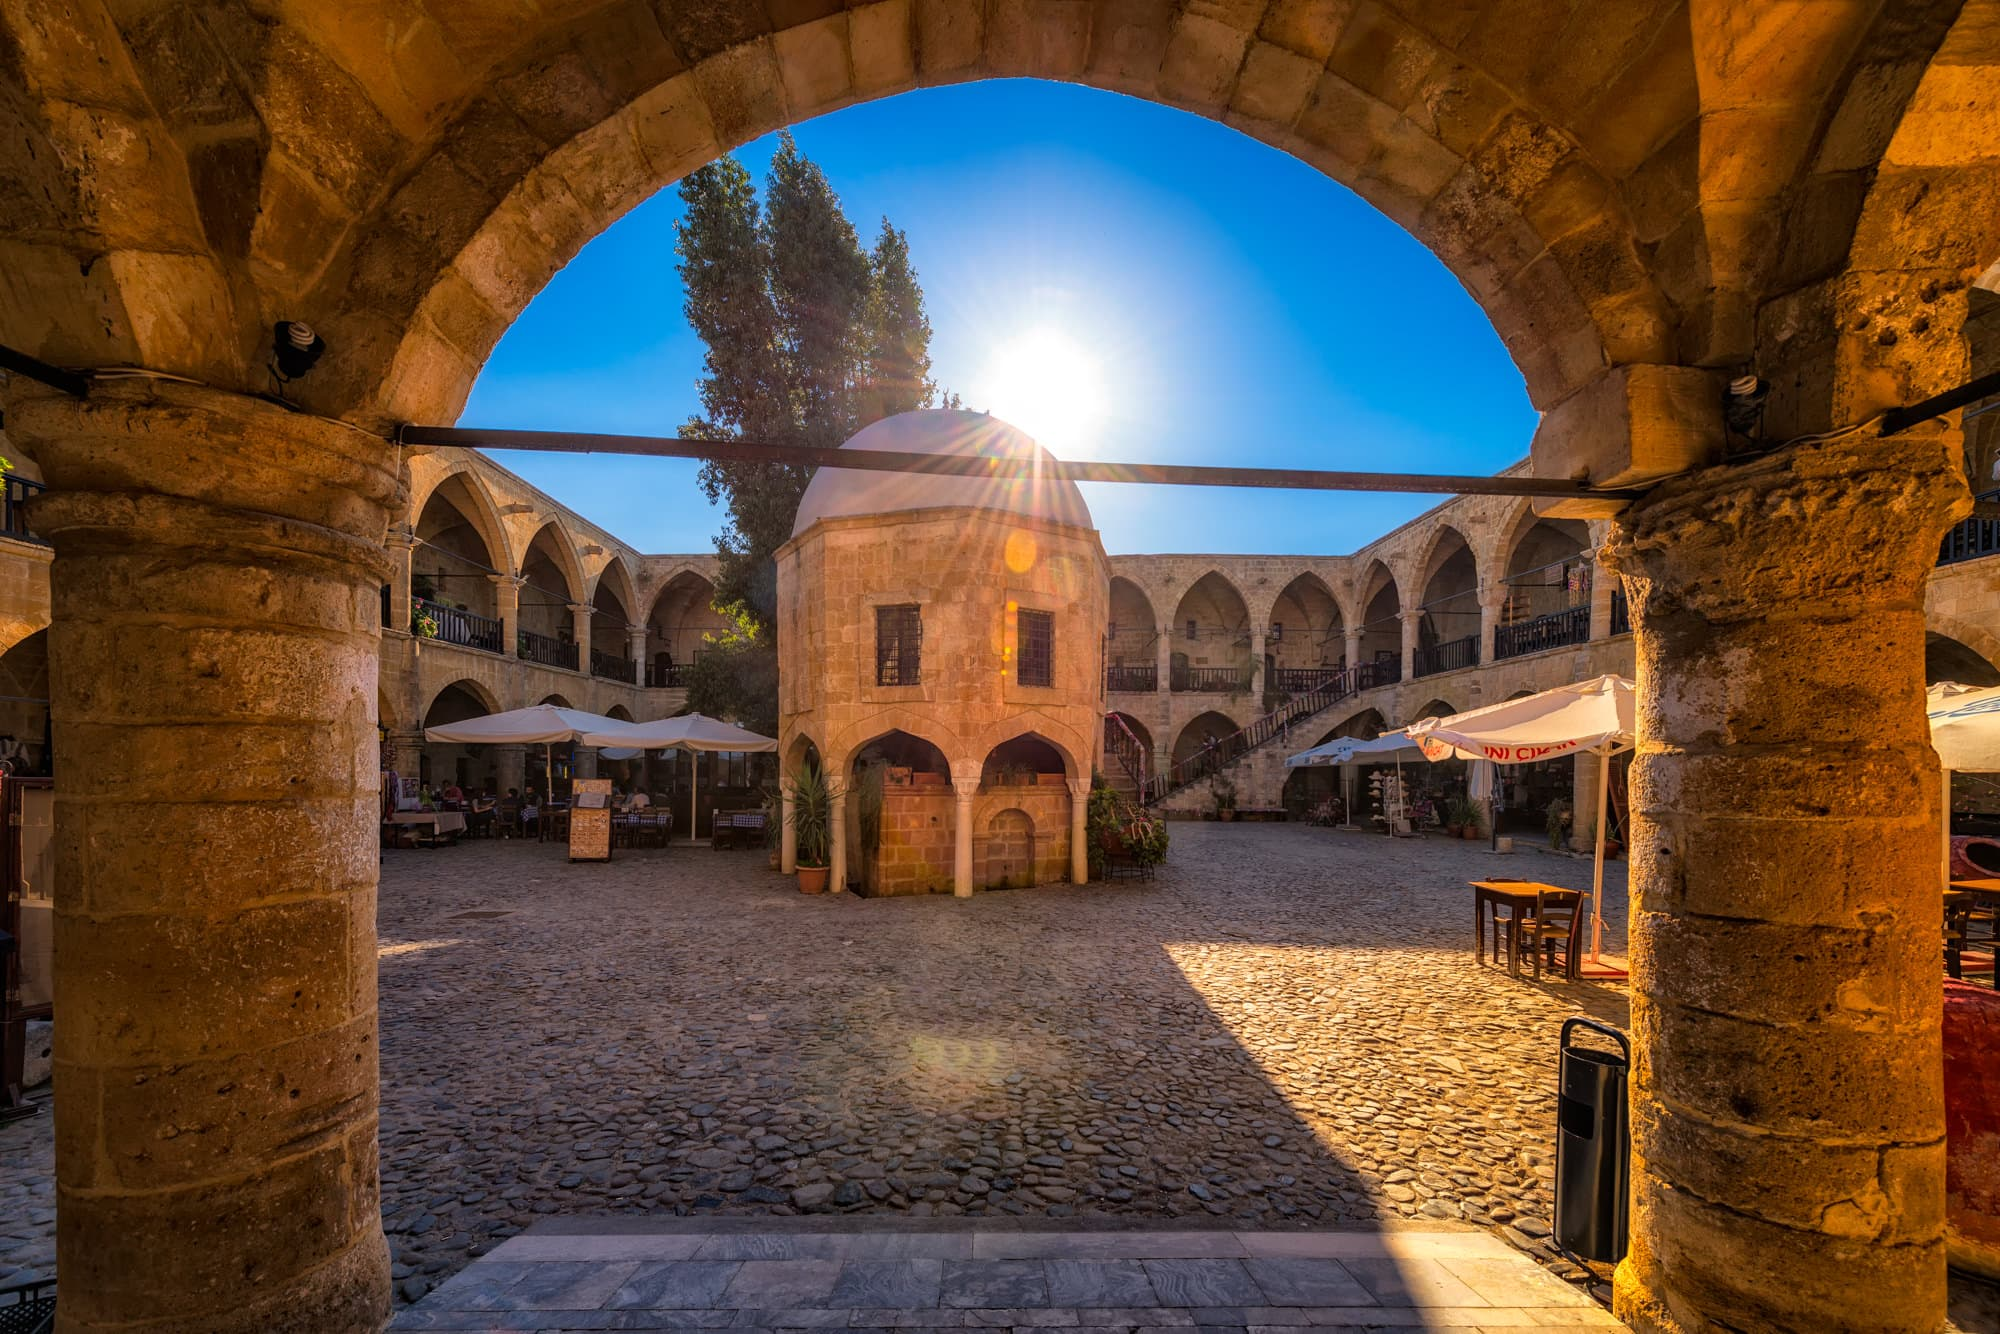 Büyük Han in the North of Nicosia on Cyprus was originally a hotel